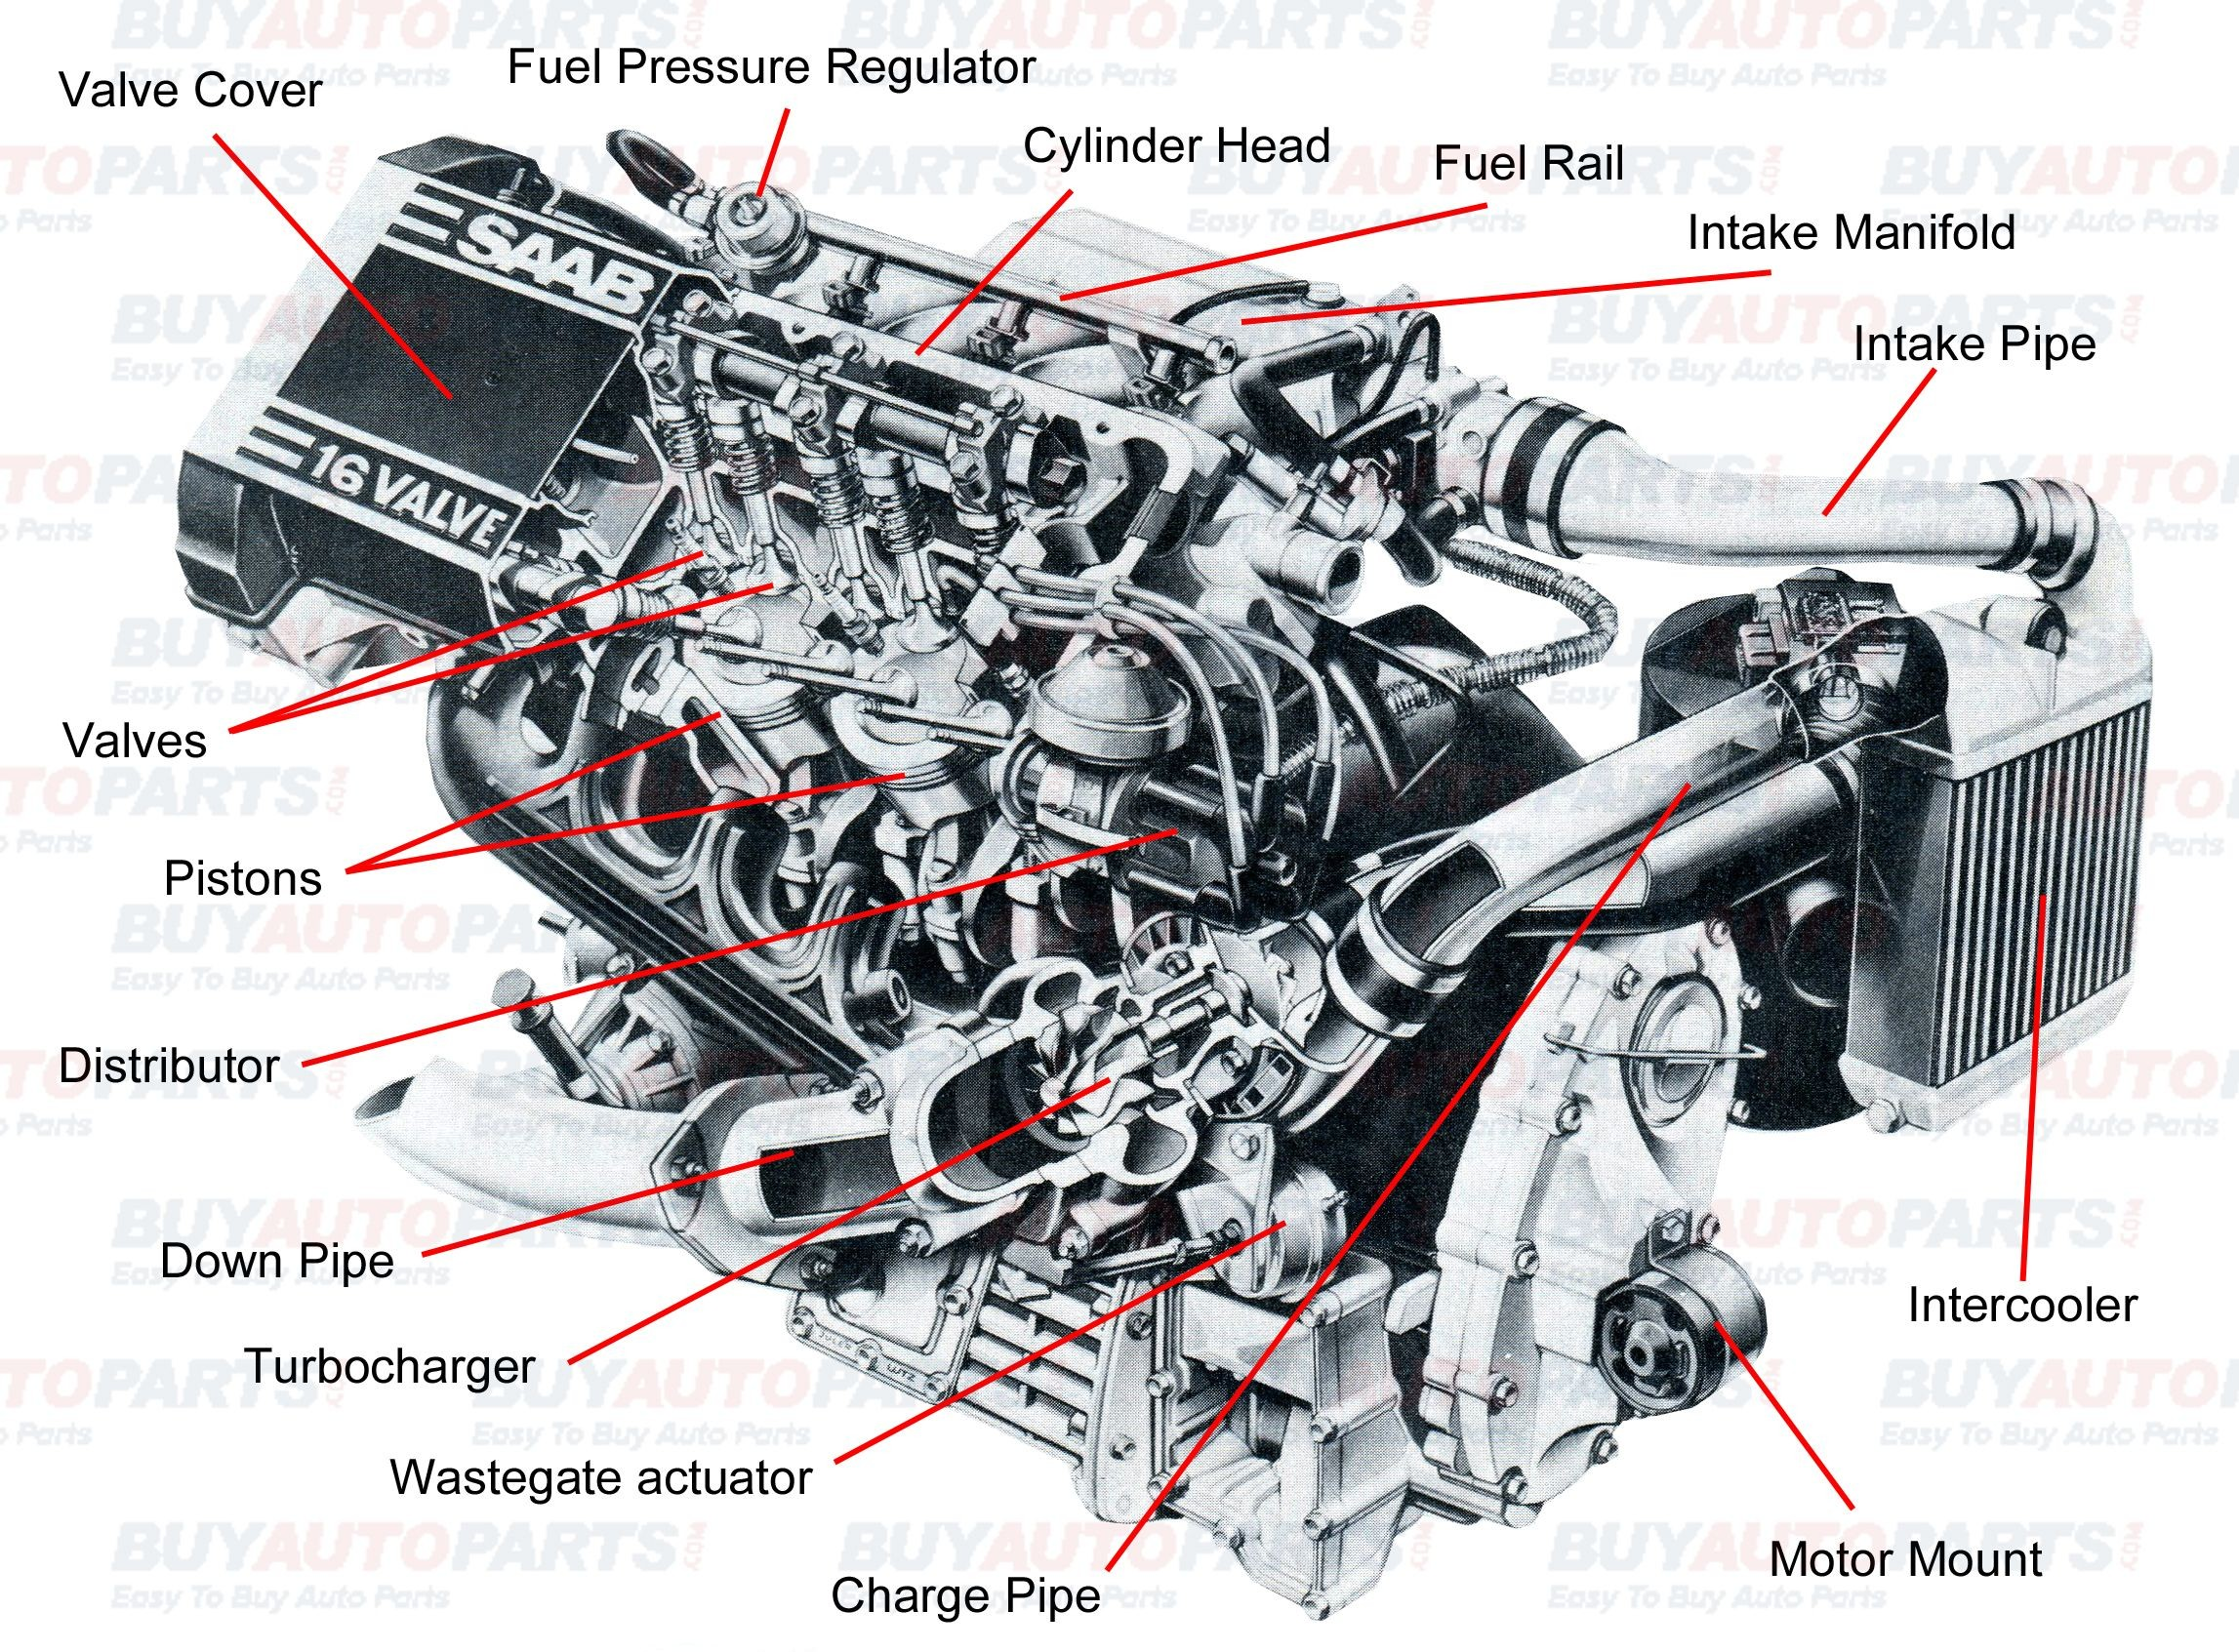 Under Car Hood Diagram All Internal Bustion Engines Have the Same Basic Ponents the Of Under Car Hood Diagram